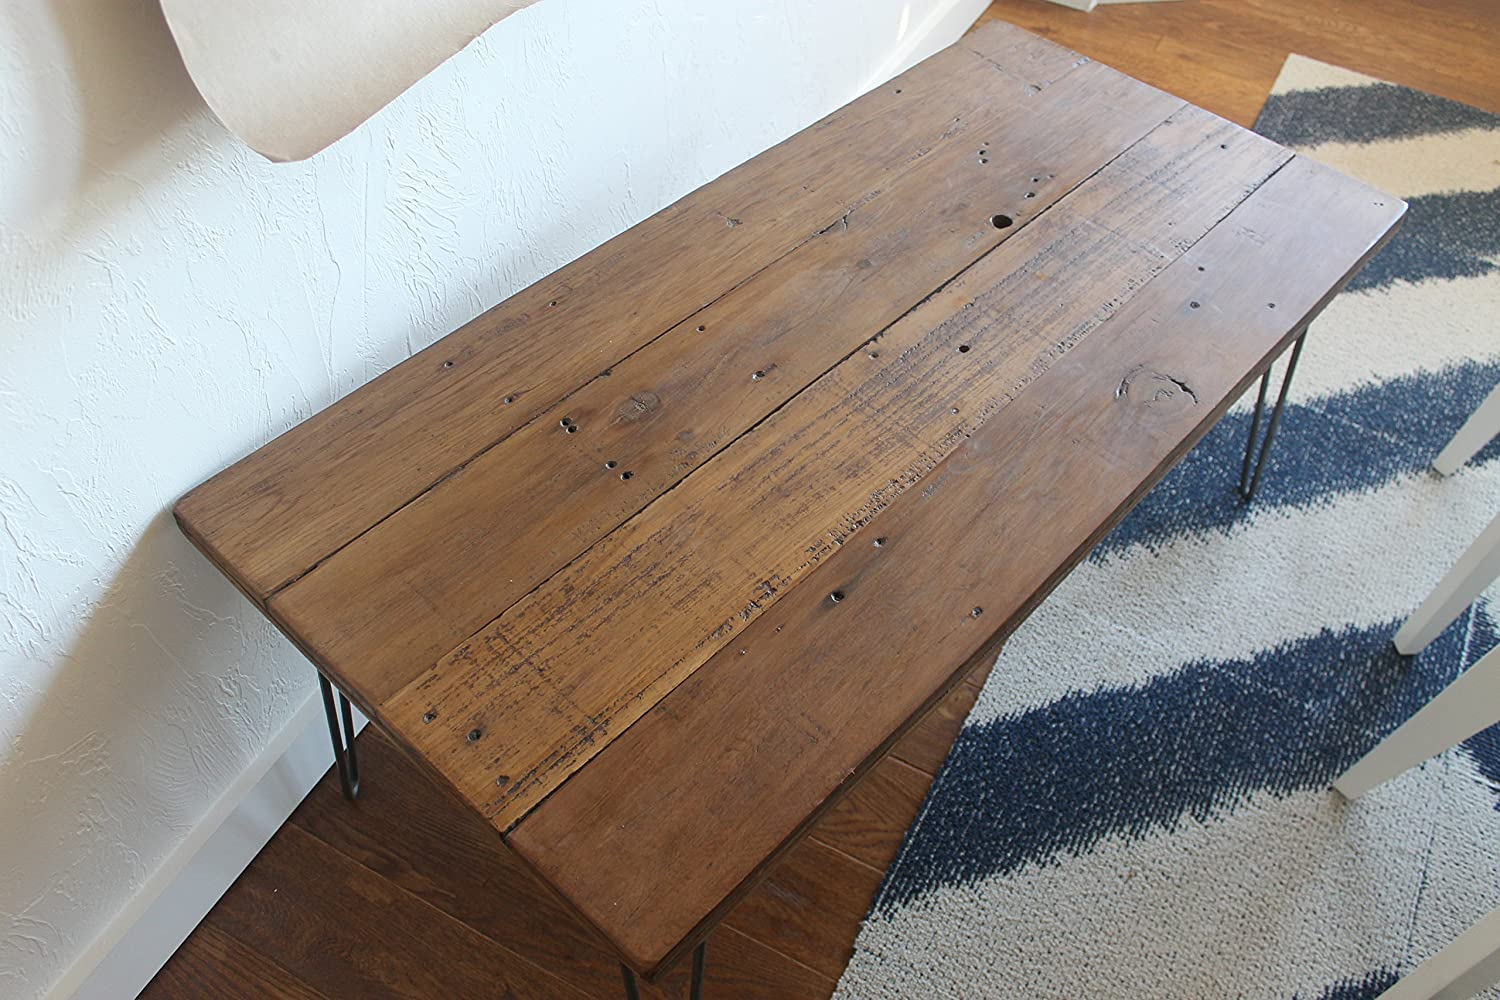 Reclaimed Wood Coffee Table on Hairpin Legs - Light Brown Stain